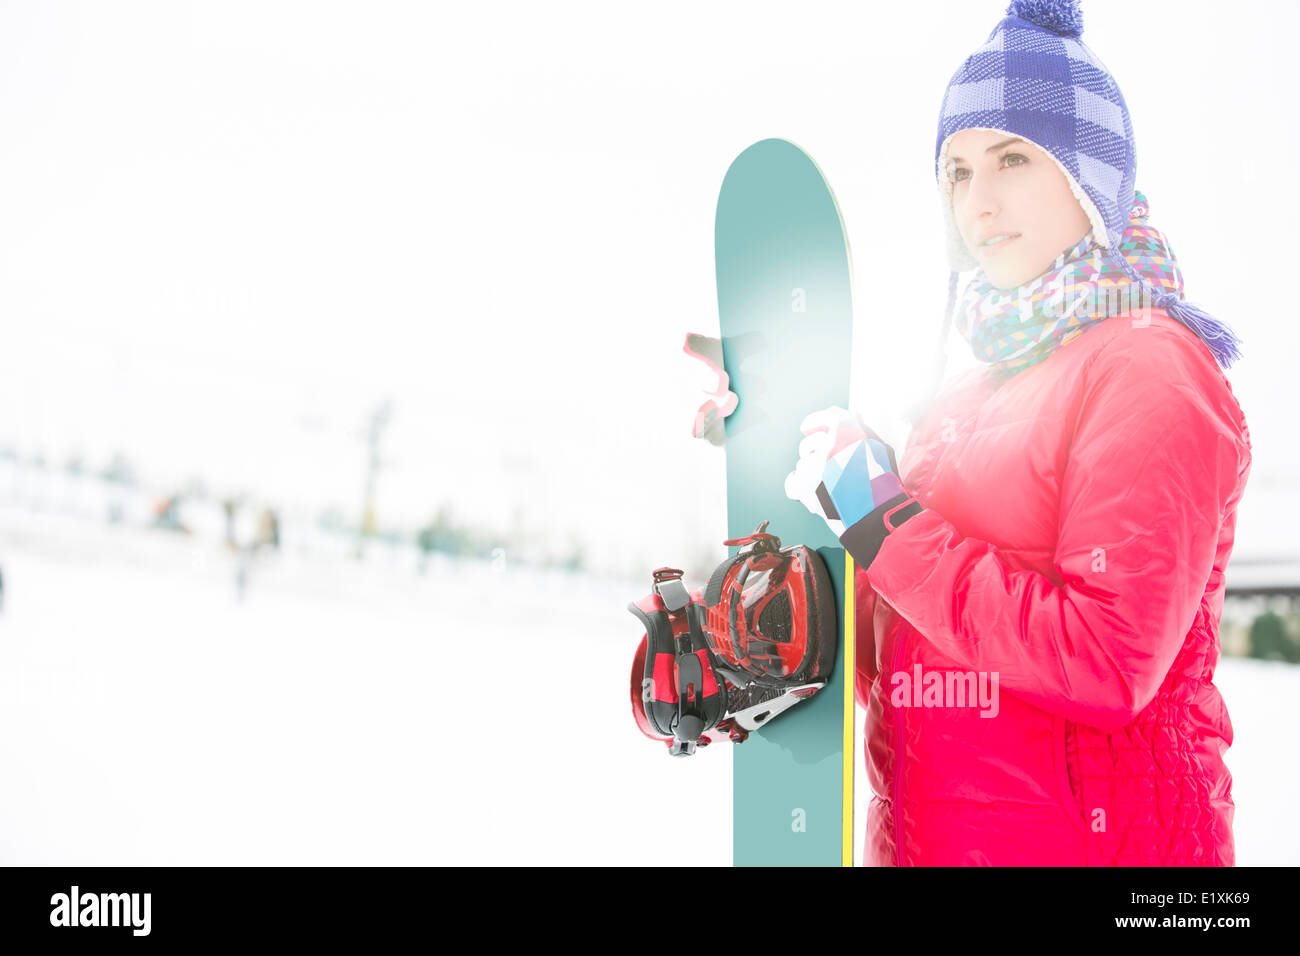 Beautiful young woman in warm clothing holding snowboard during winter - Stock Image